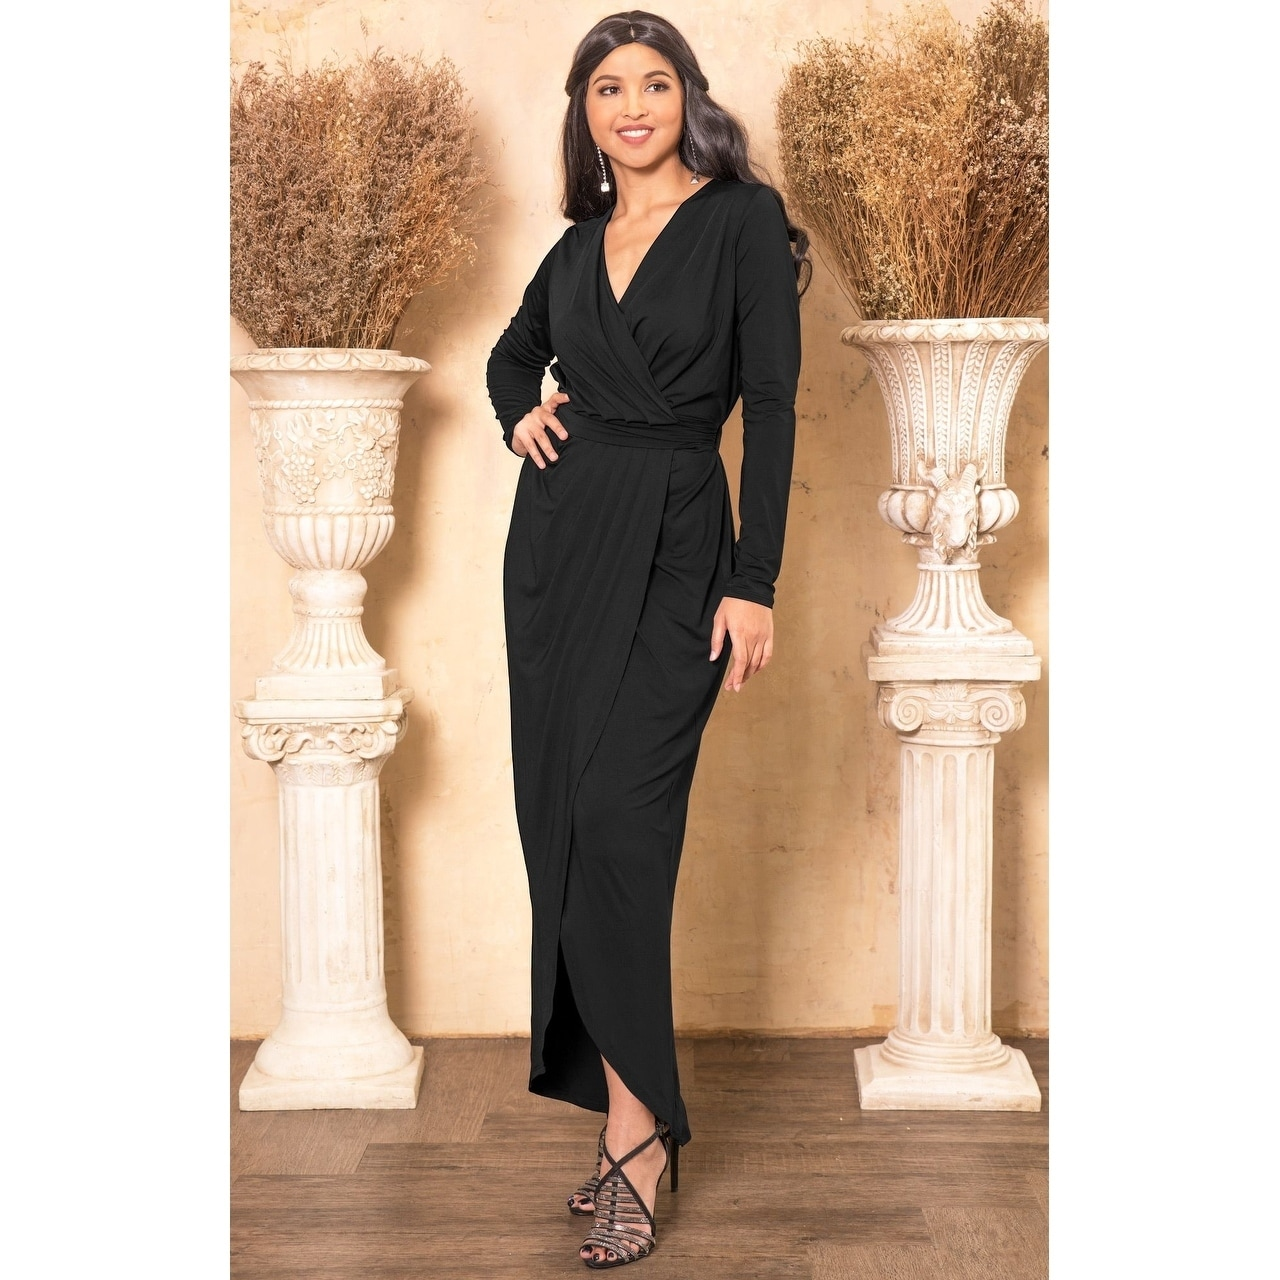 af909cc065c KOH KOH Womens Long Sleeve Cocktail Party V-Neck Wrap Gown Maxi Dress